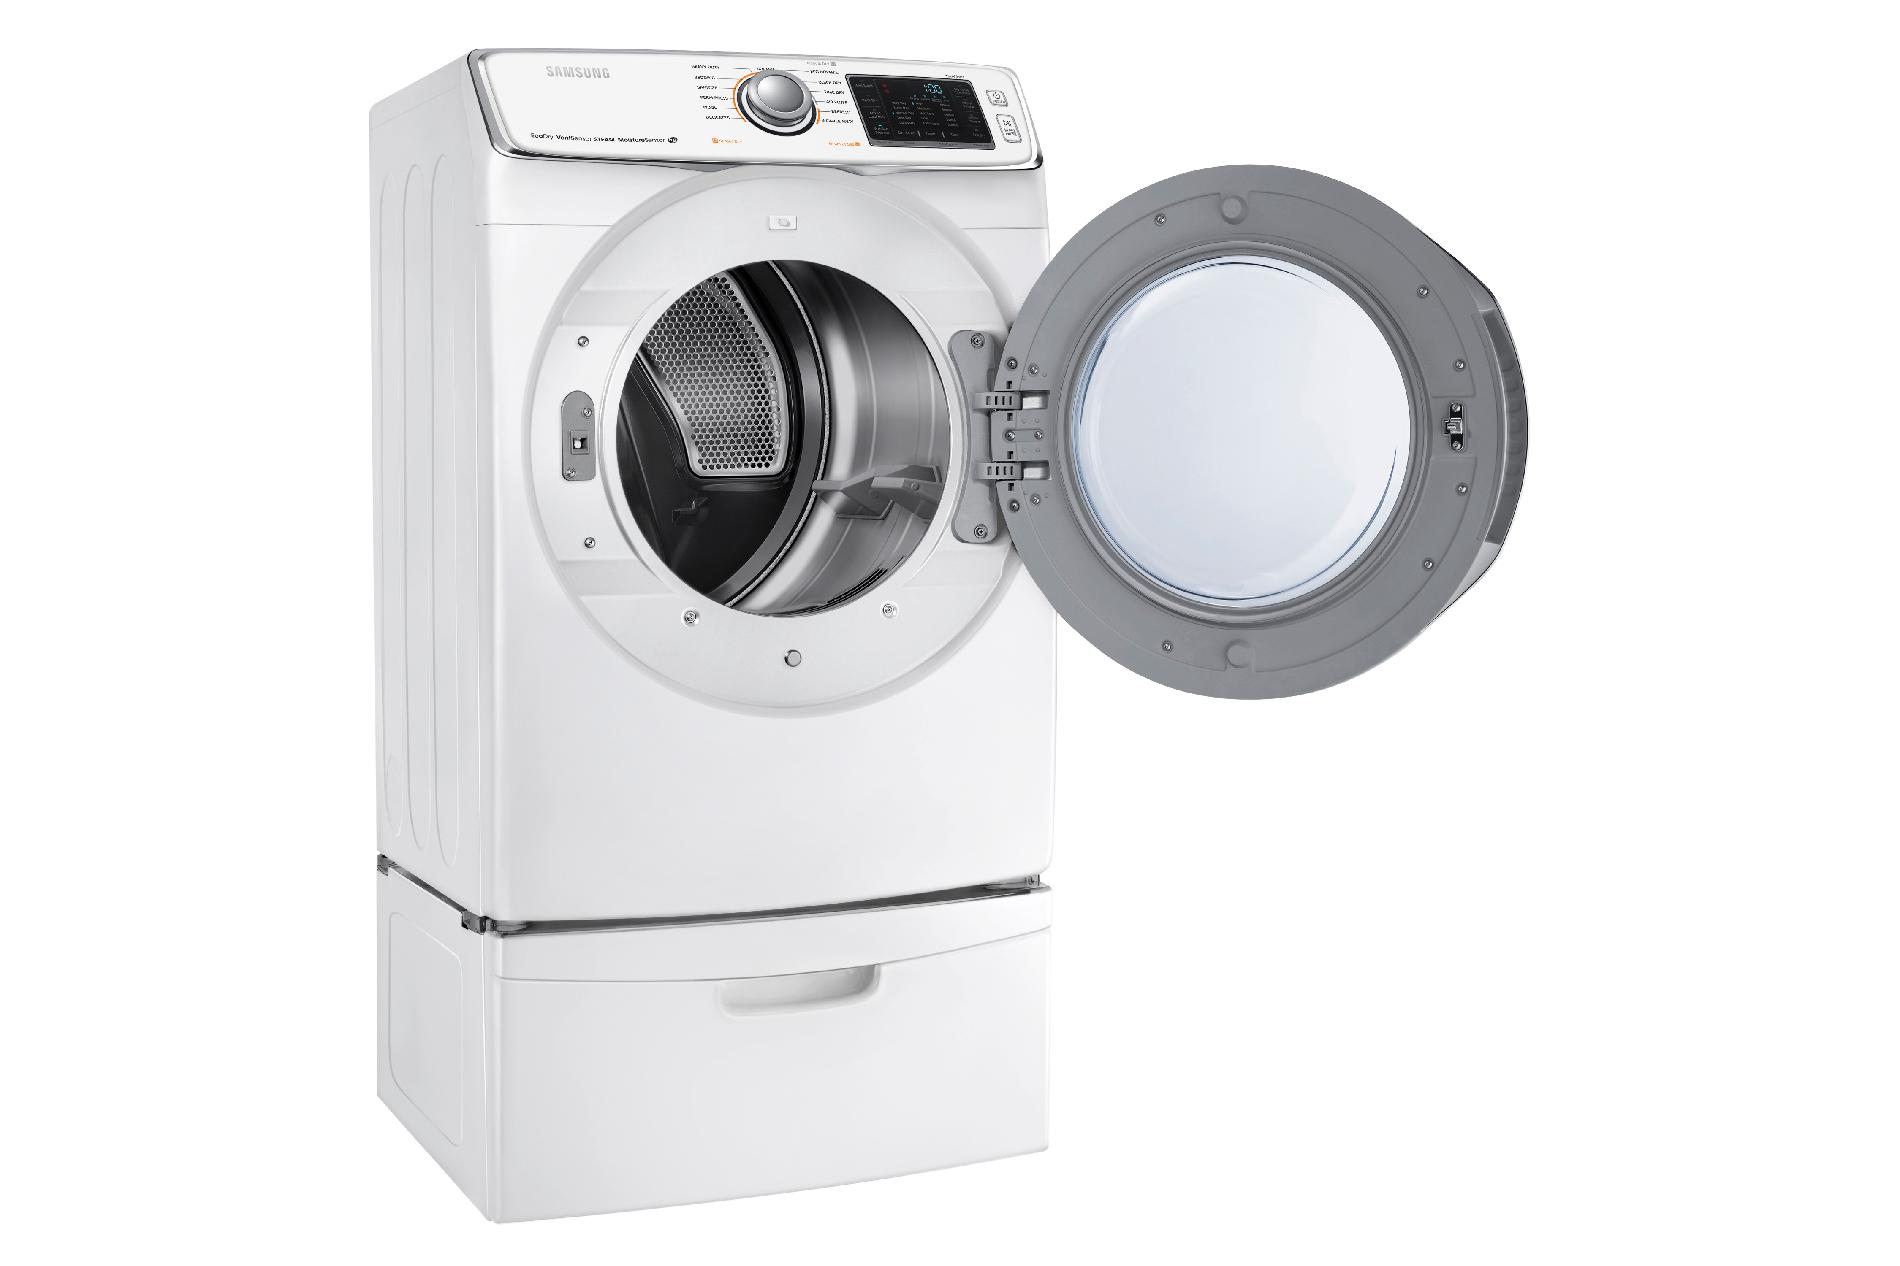 Samsung 4.5 cu. ft. Front-Load Washer - White